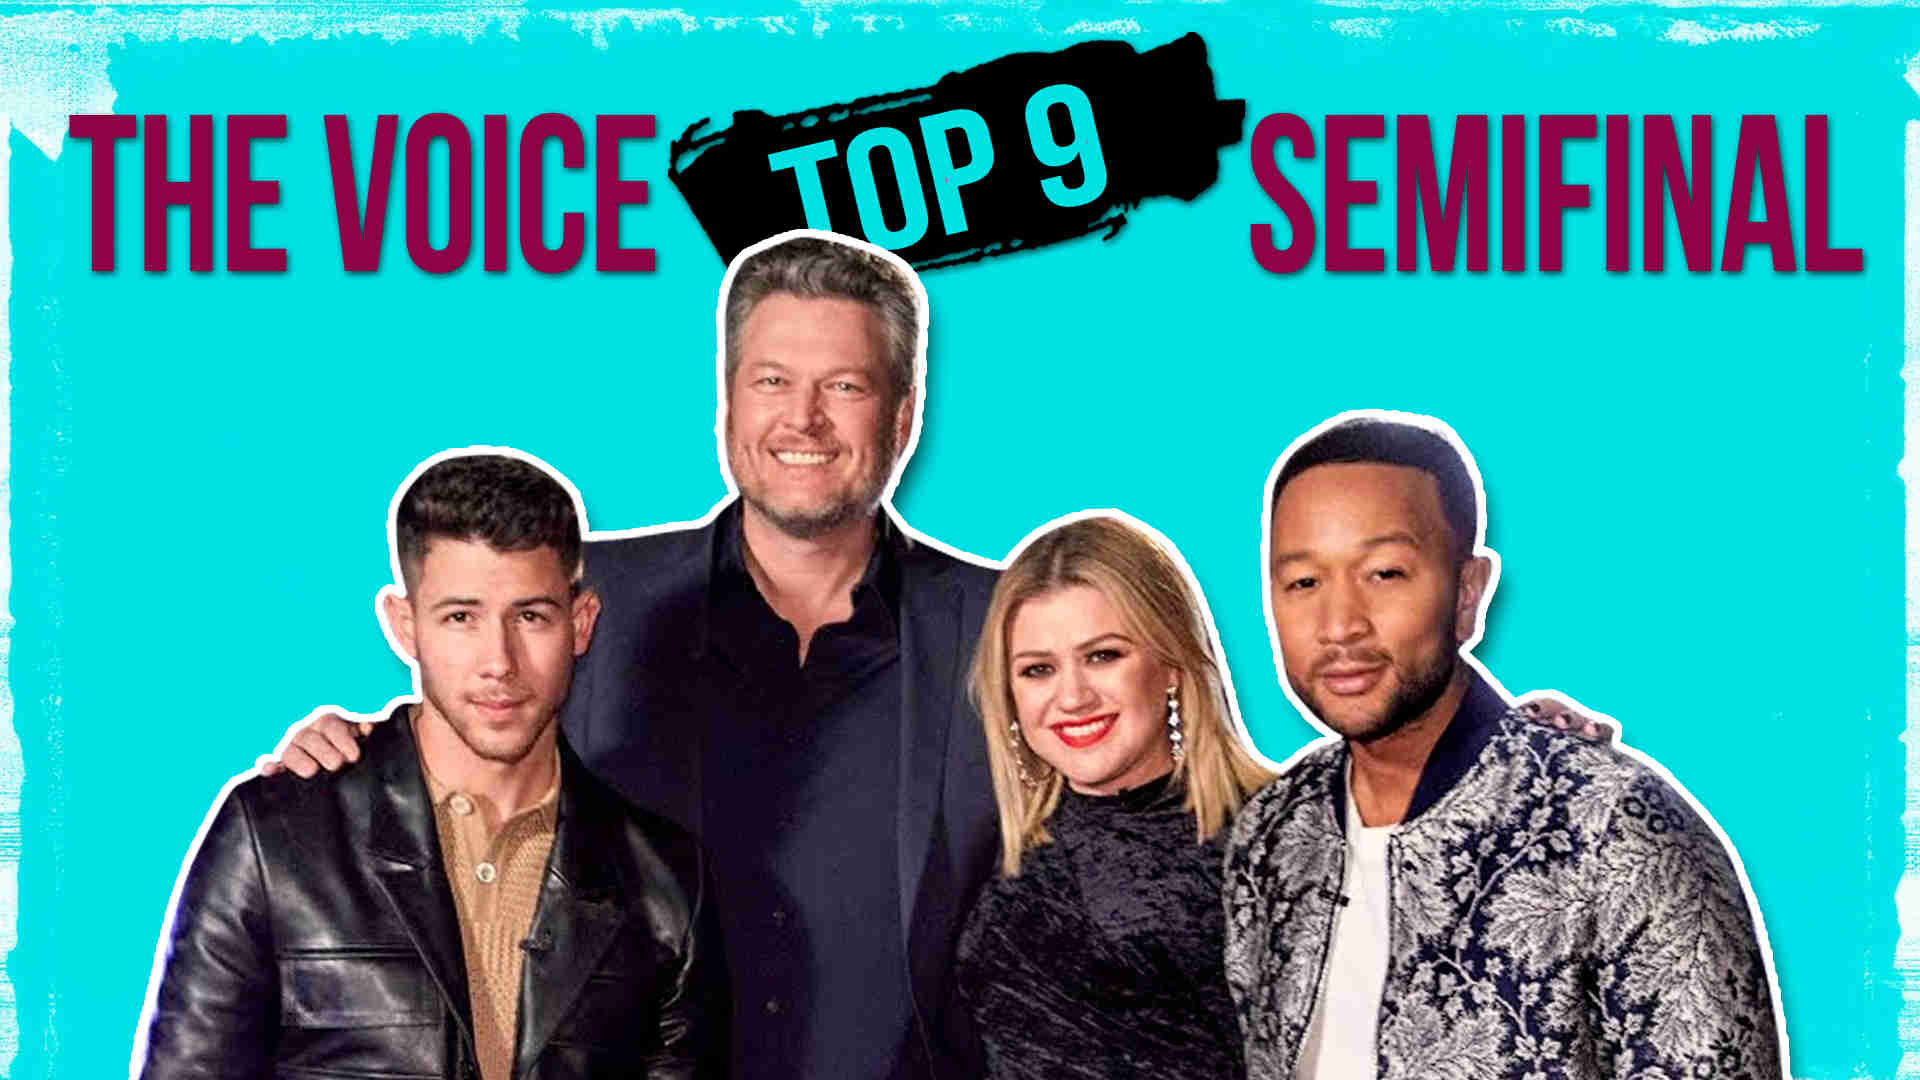 Vote The Voice 2020 Semifinals Voting Episode Tonight on 11 May 2020